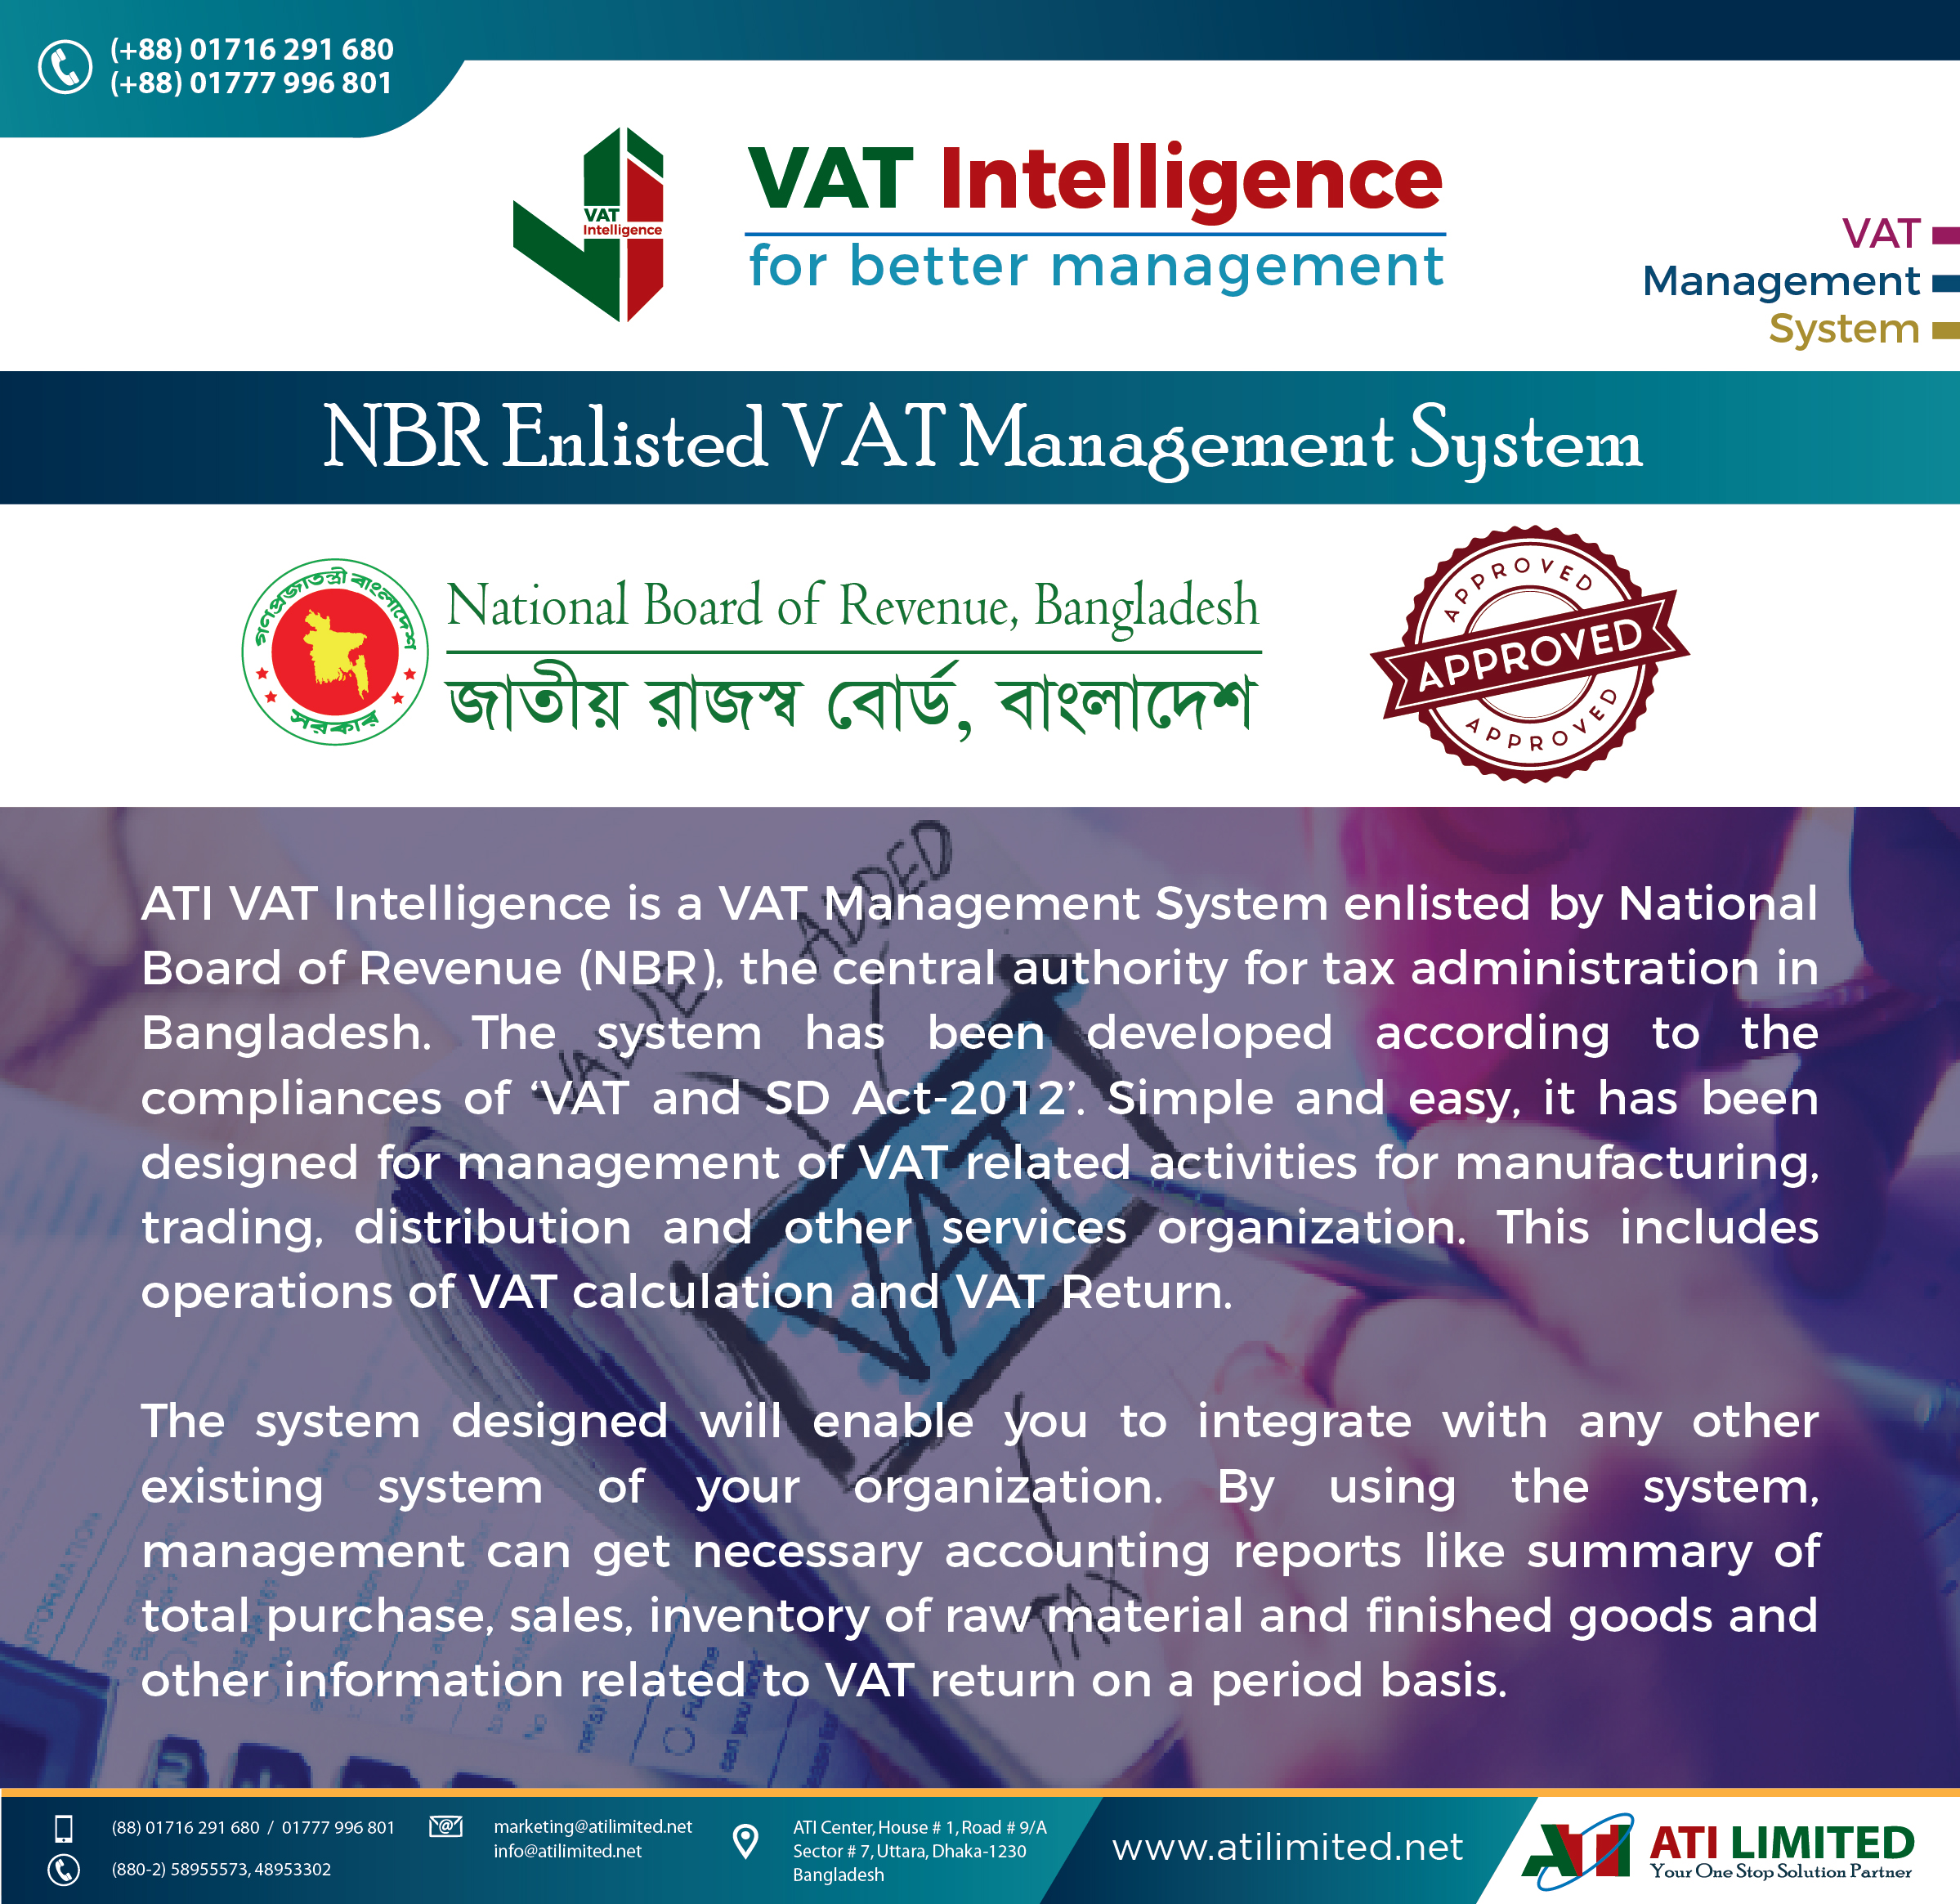 VAT Intelligence